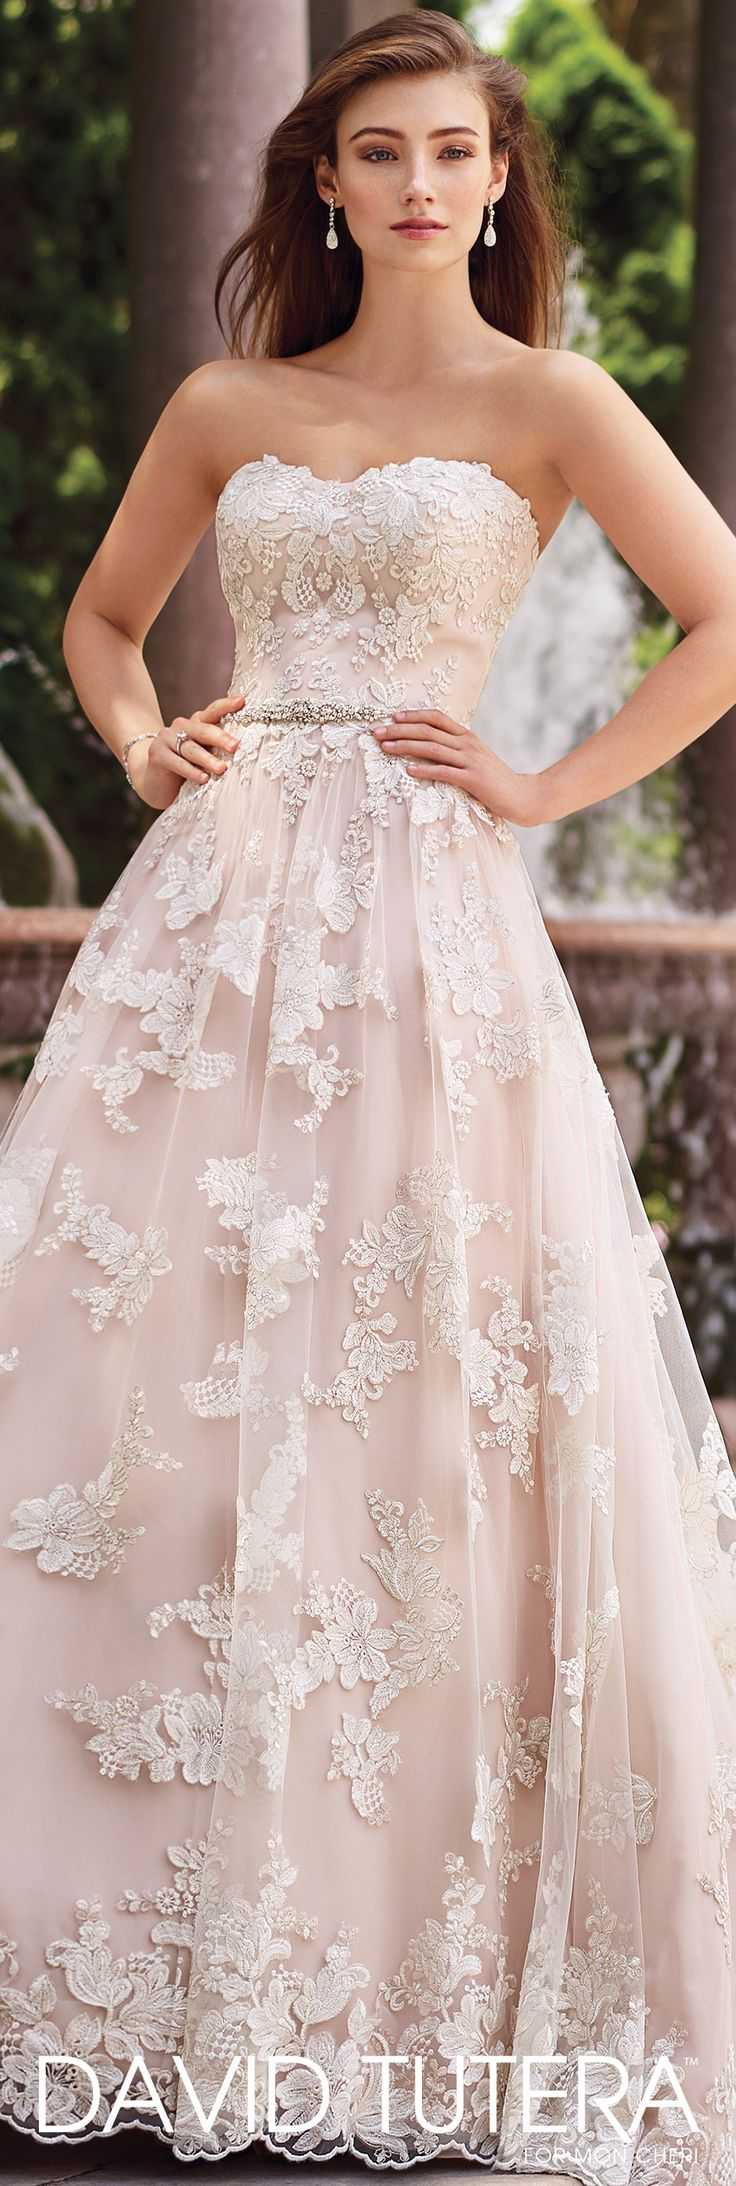 Best 25 blush pink wedding dress ideas on pinterest baby hand beaded lace a line wedding dress 117276 tala ombrellifo Images